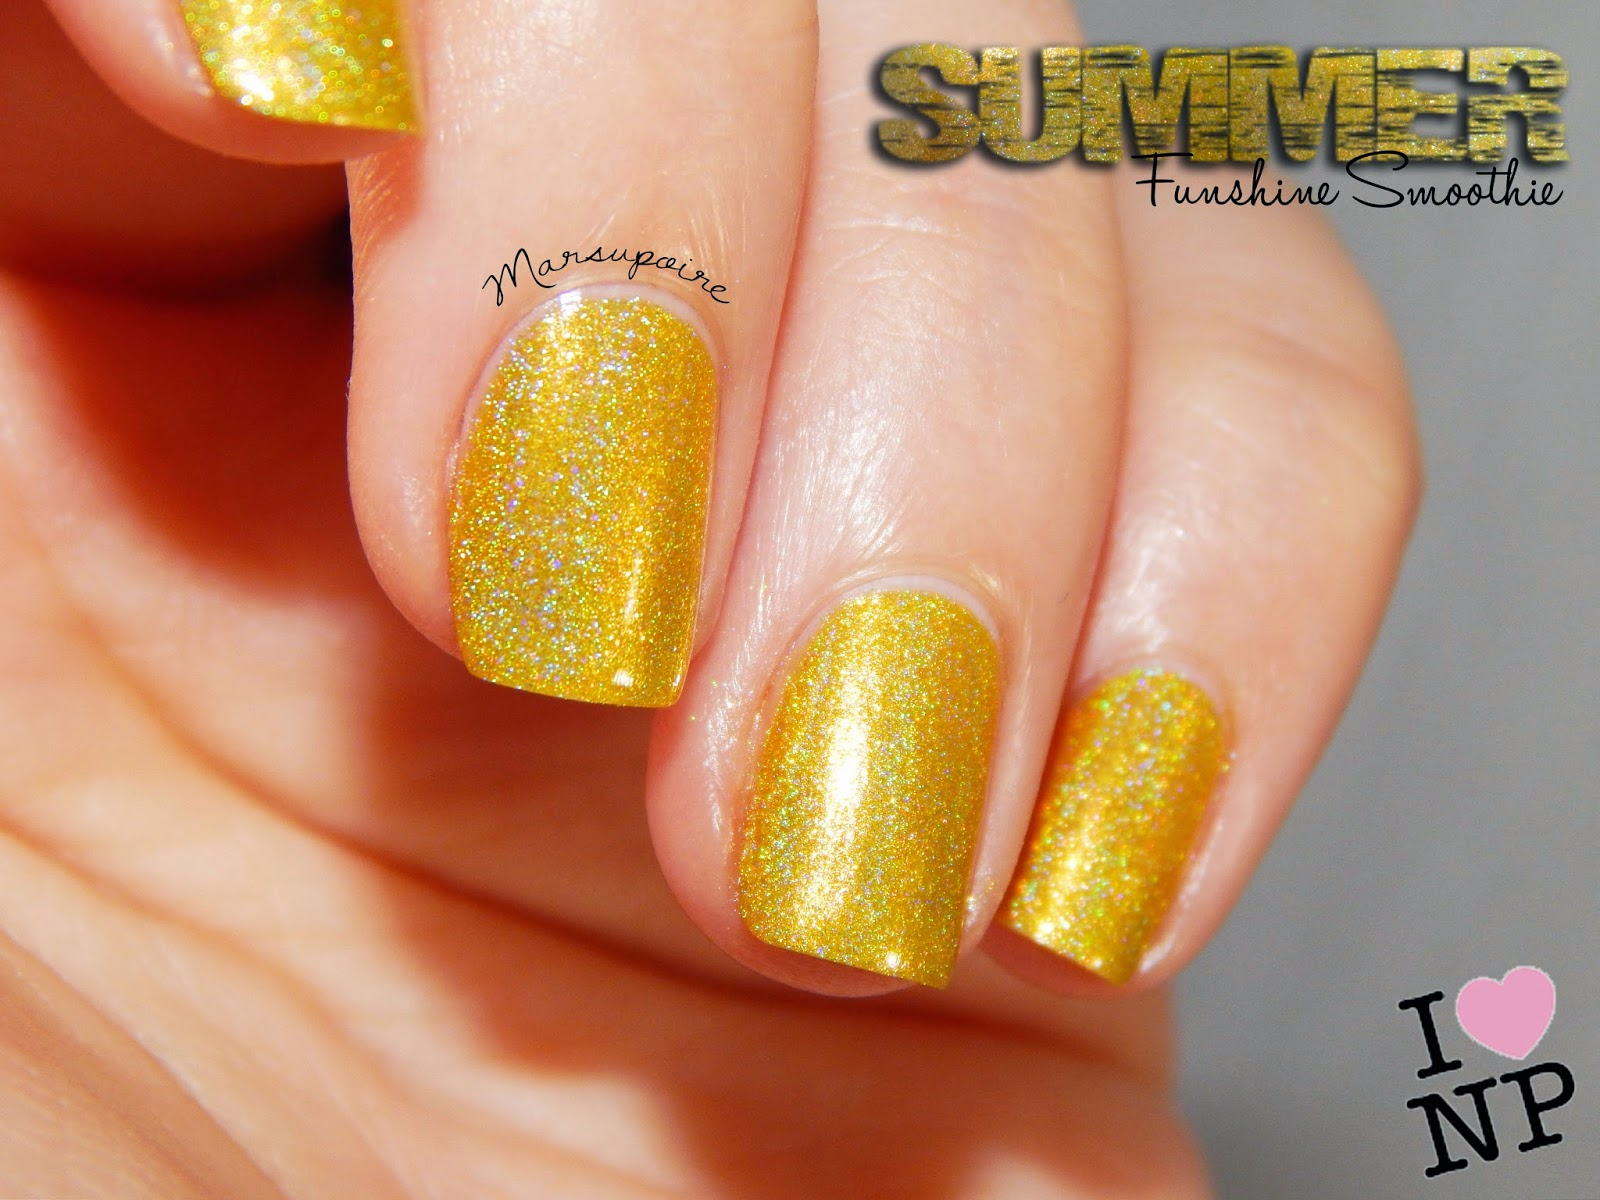 Vernis_ILNP_Funshine_Smoothie_flash